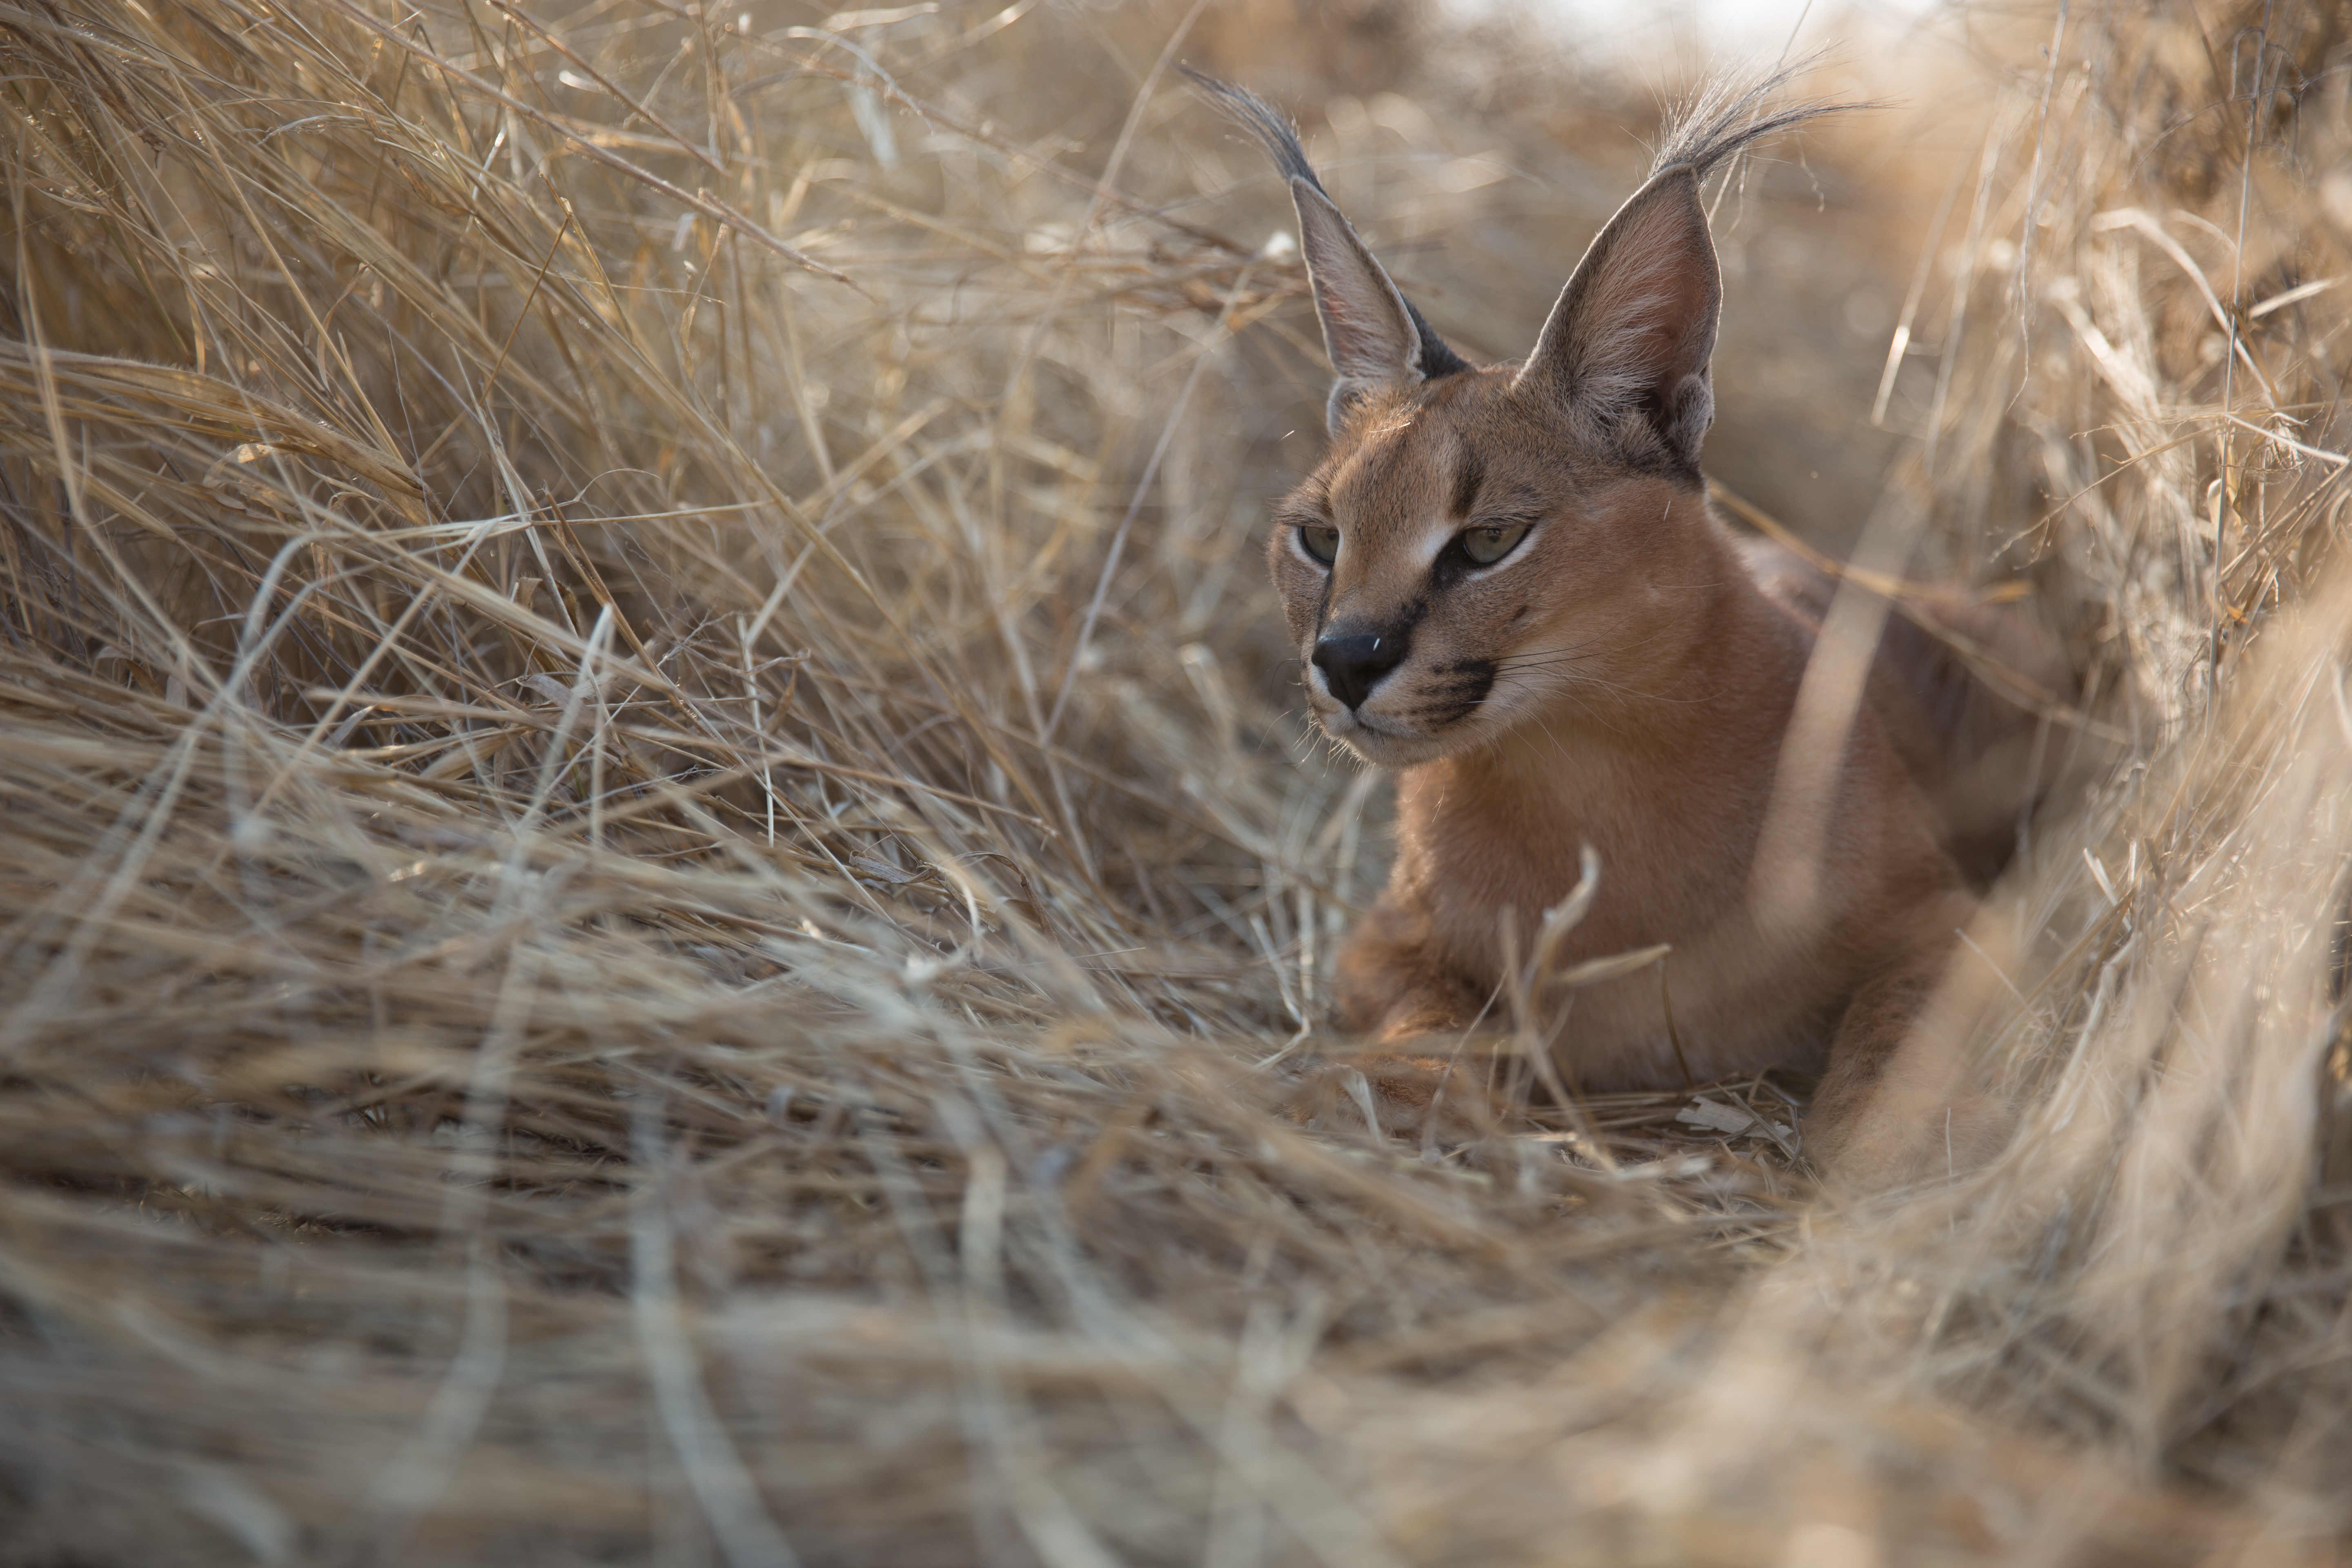 A caracal (Caracal caracal) in the Namib Desert, waiting for temperatures to drop so it can start hunting. The caracal is quick over short distances, propelled by its powerful hindquarters, which also give it remarkable powers - one was recorded leaping 11 feet vertically. They are known to jump into flocks of startled birds and grab them out the air - some are so fast they can catch two birds in a single leap. (National Geographic/Stephanie Thompson)